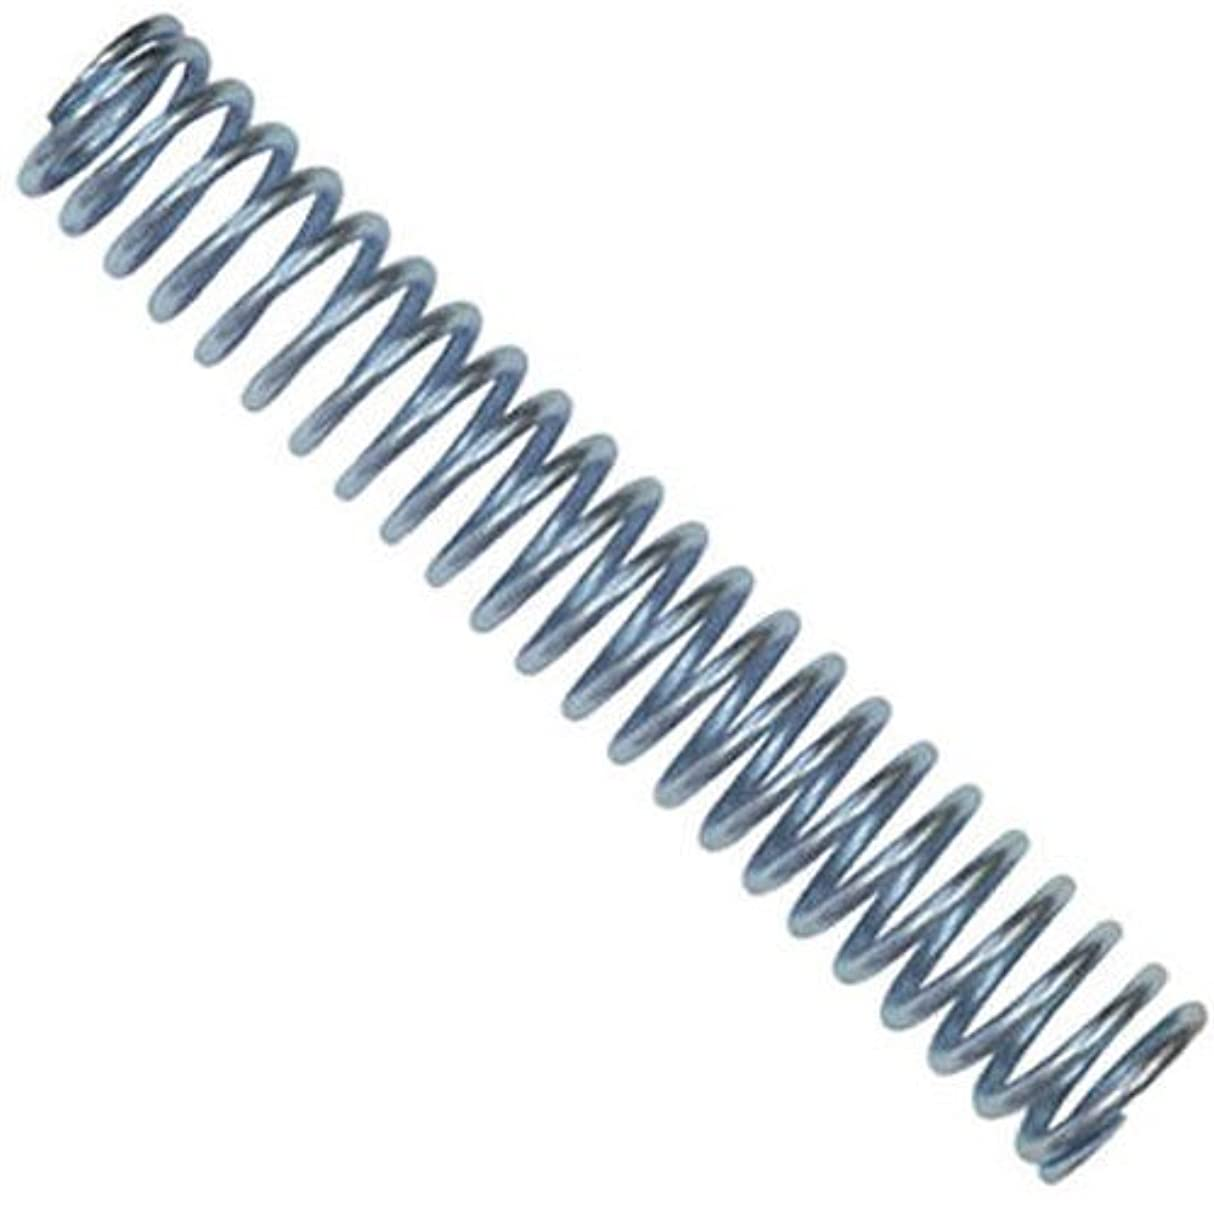 アクティビティ地獄樹皮Compression Spring - Open Stock for Display for 300-2-L-COMPRESSION SPRING (並行輸入品)